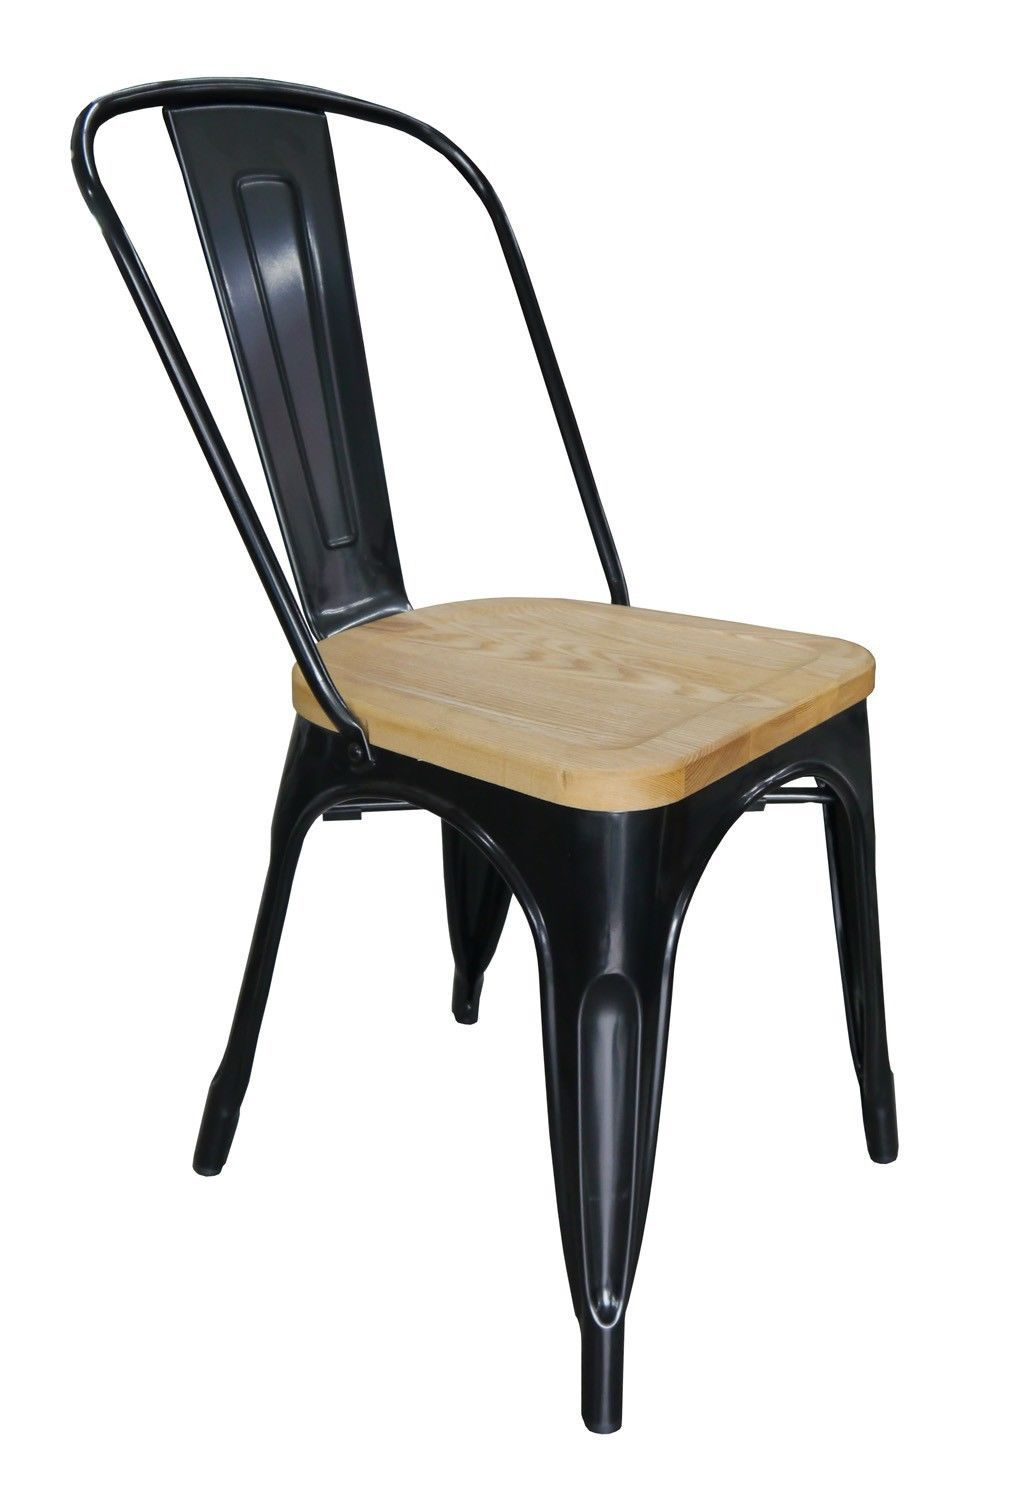 Replica tolix chair with ash timber seat larkos for Tolix stuhl replik